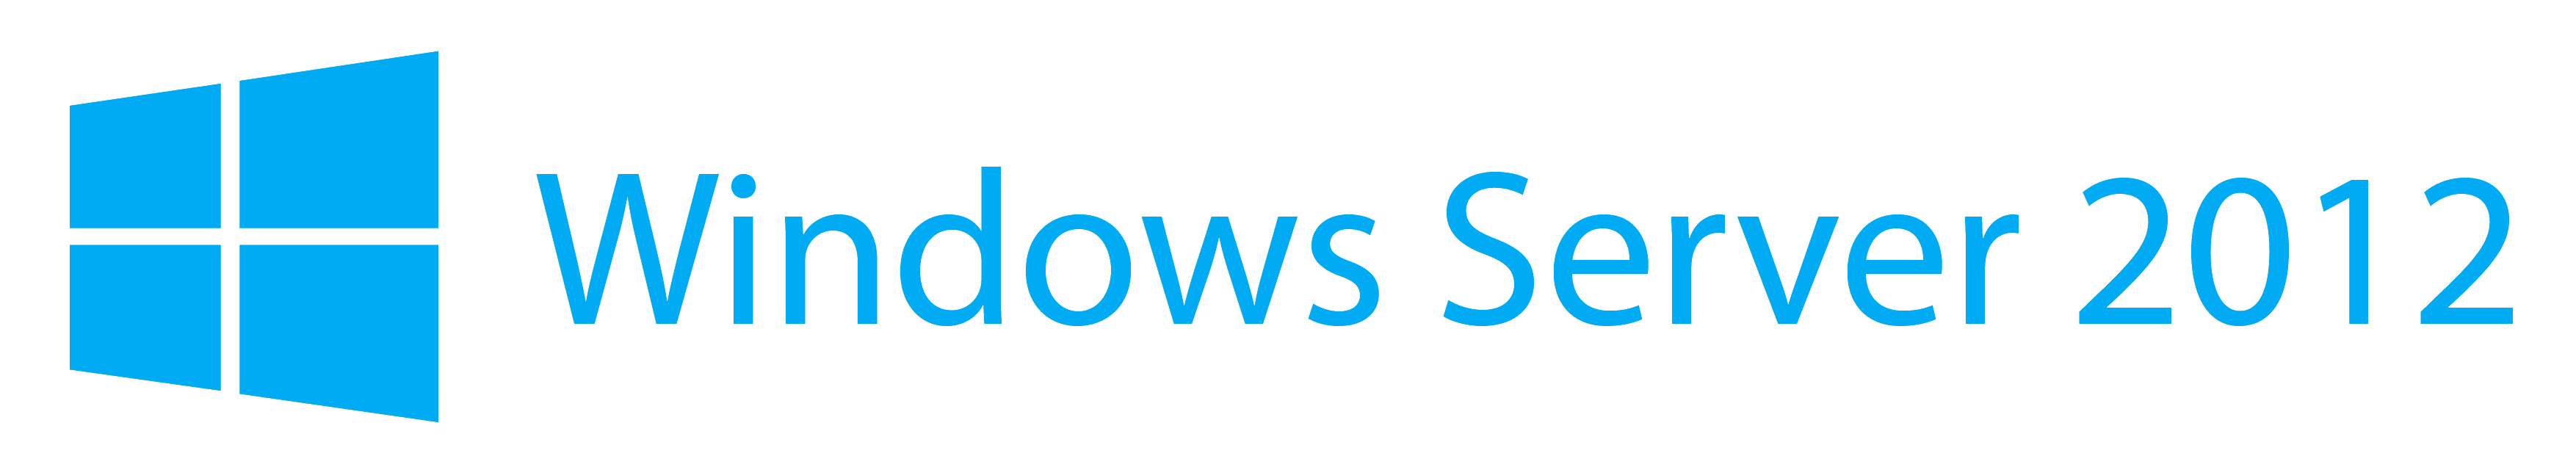 Windows Server 2012 R2 / 2016 Server und Windows 10, Kompakt Administration Logo